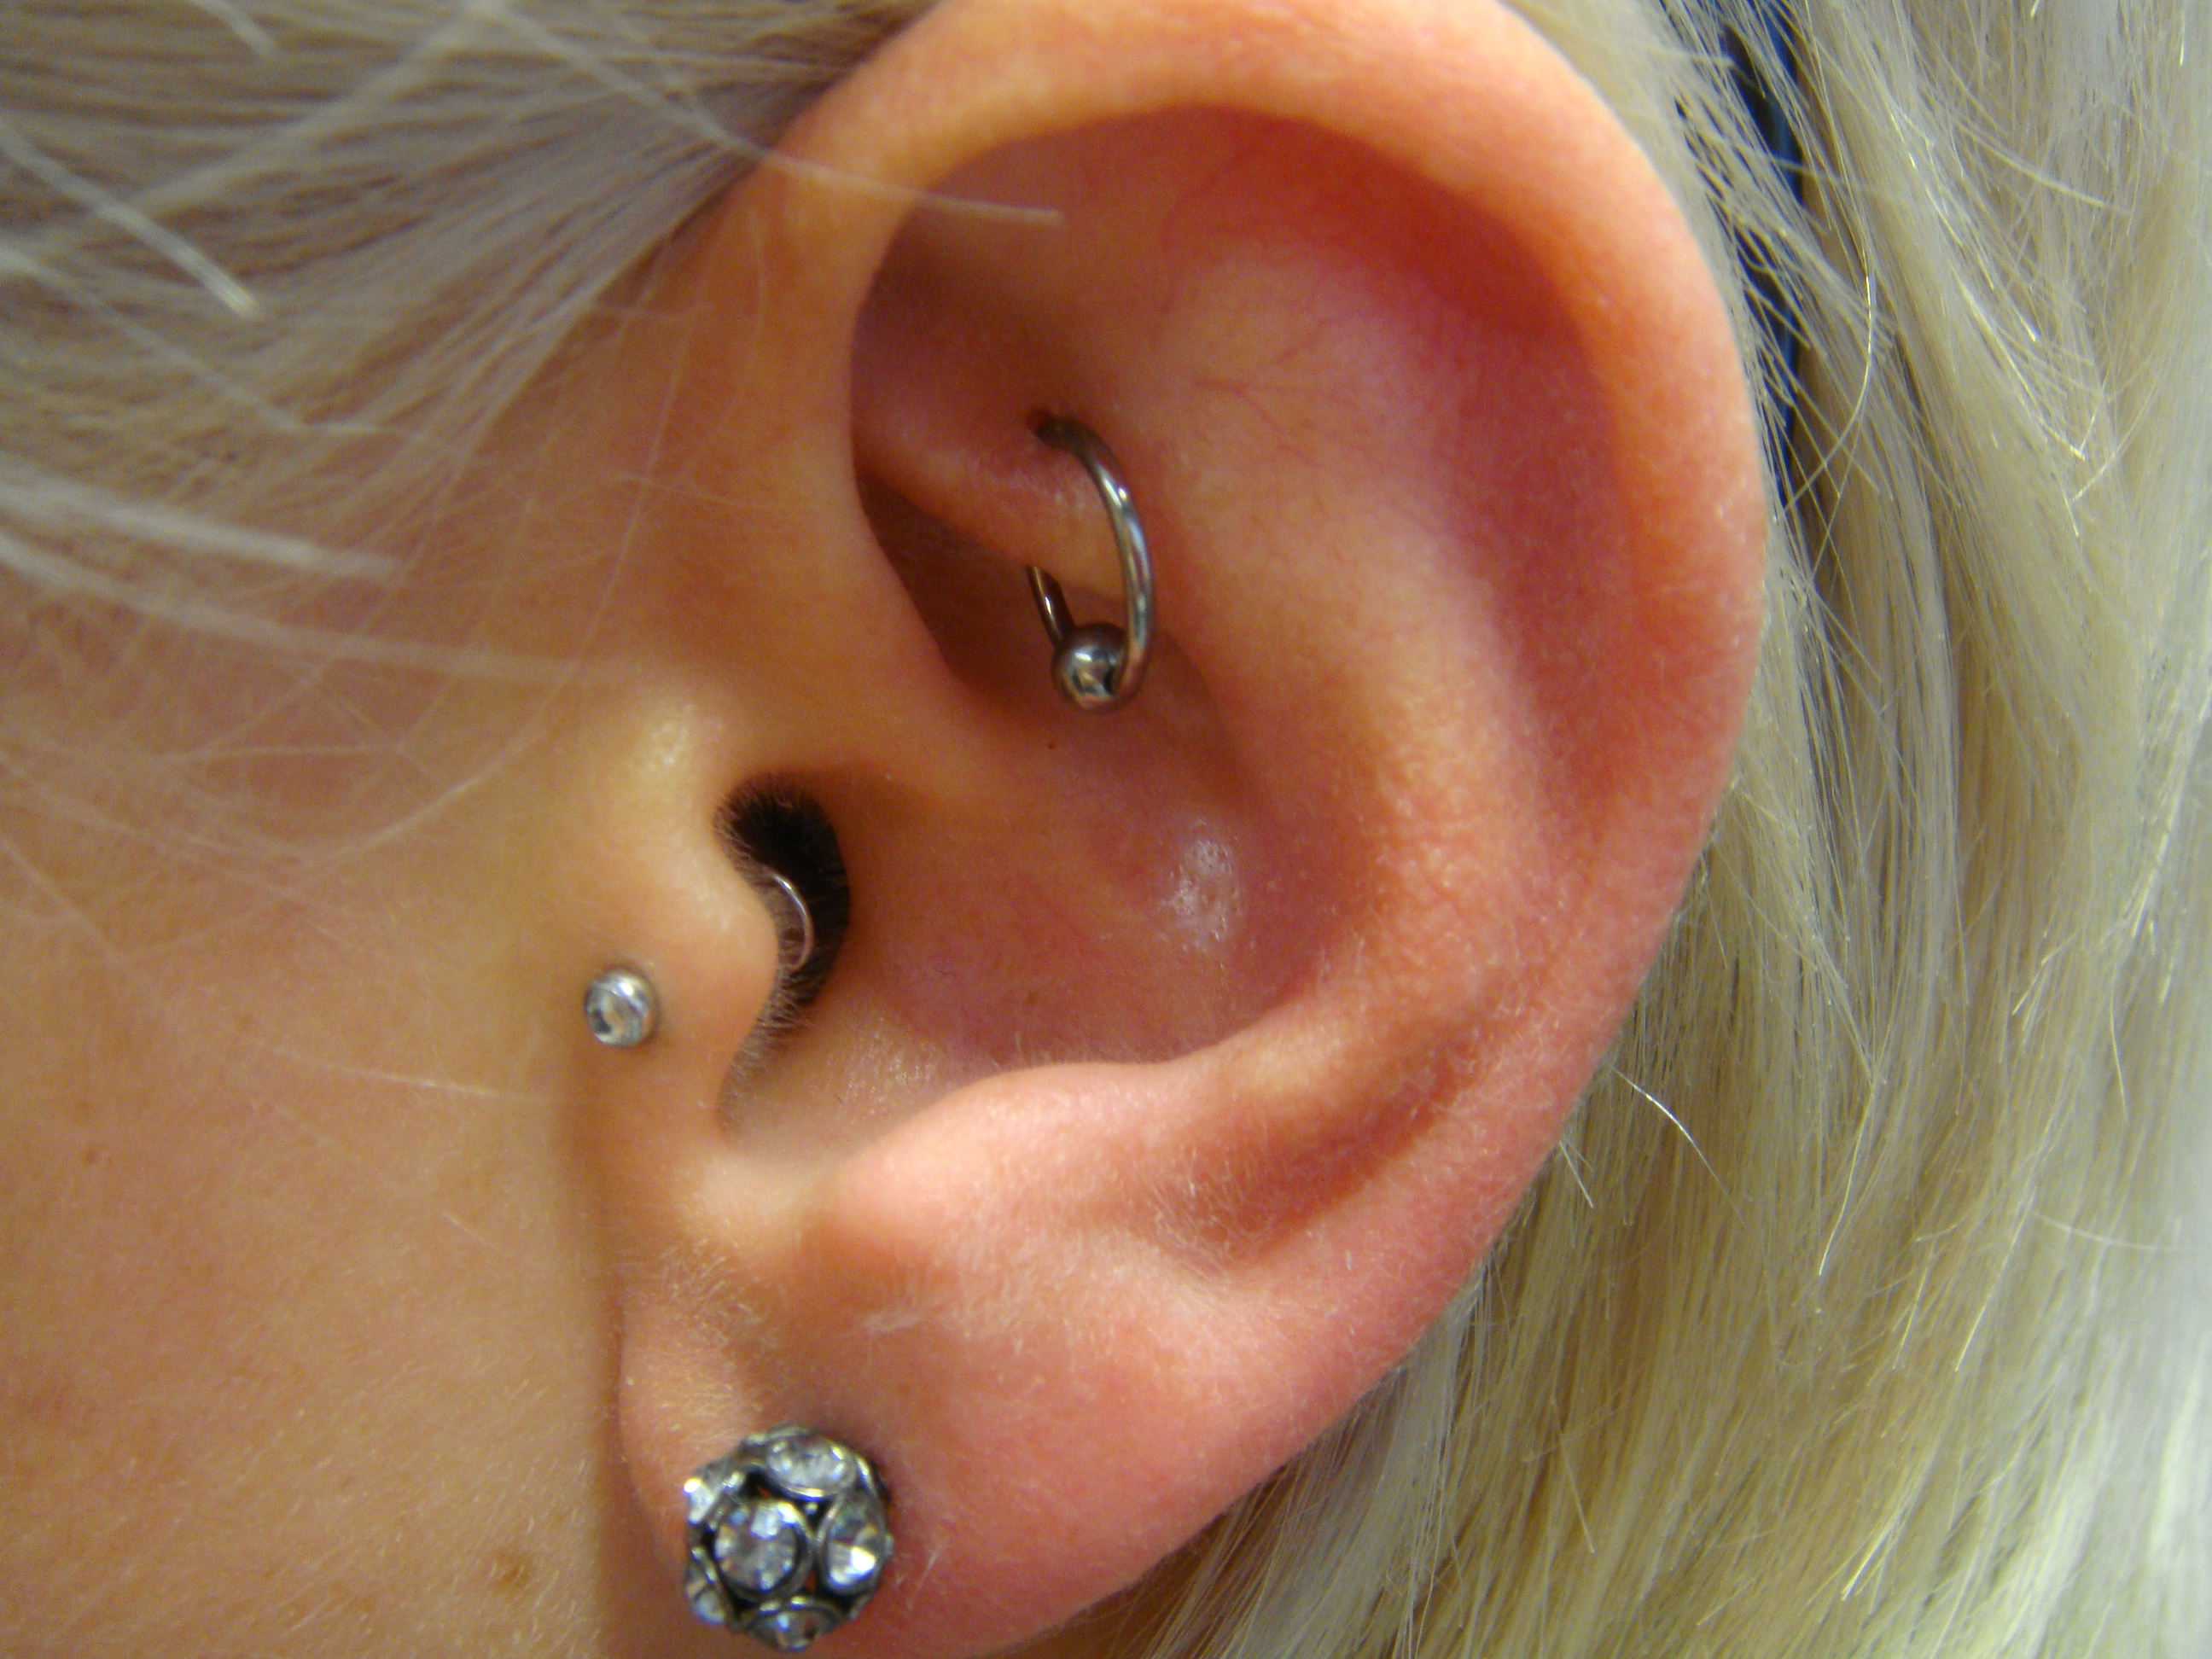 Piercing; Ohr; Tragus; Rook